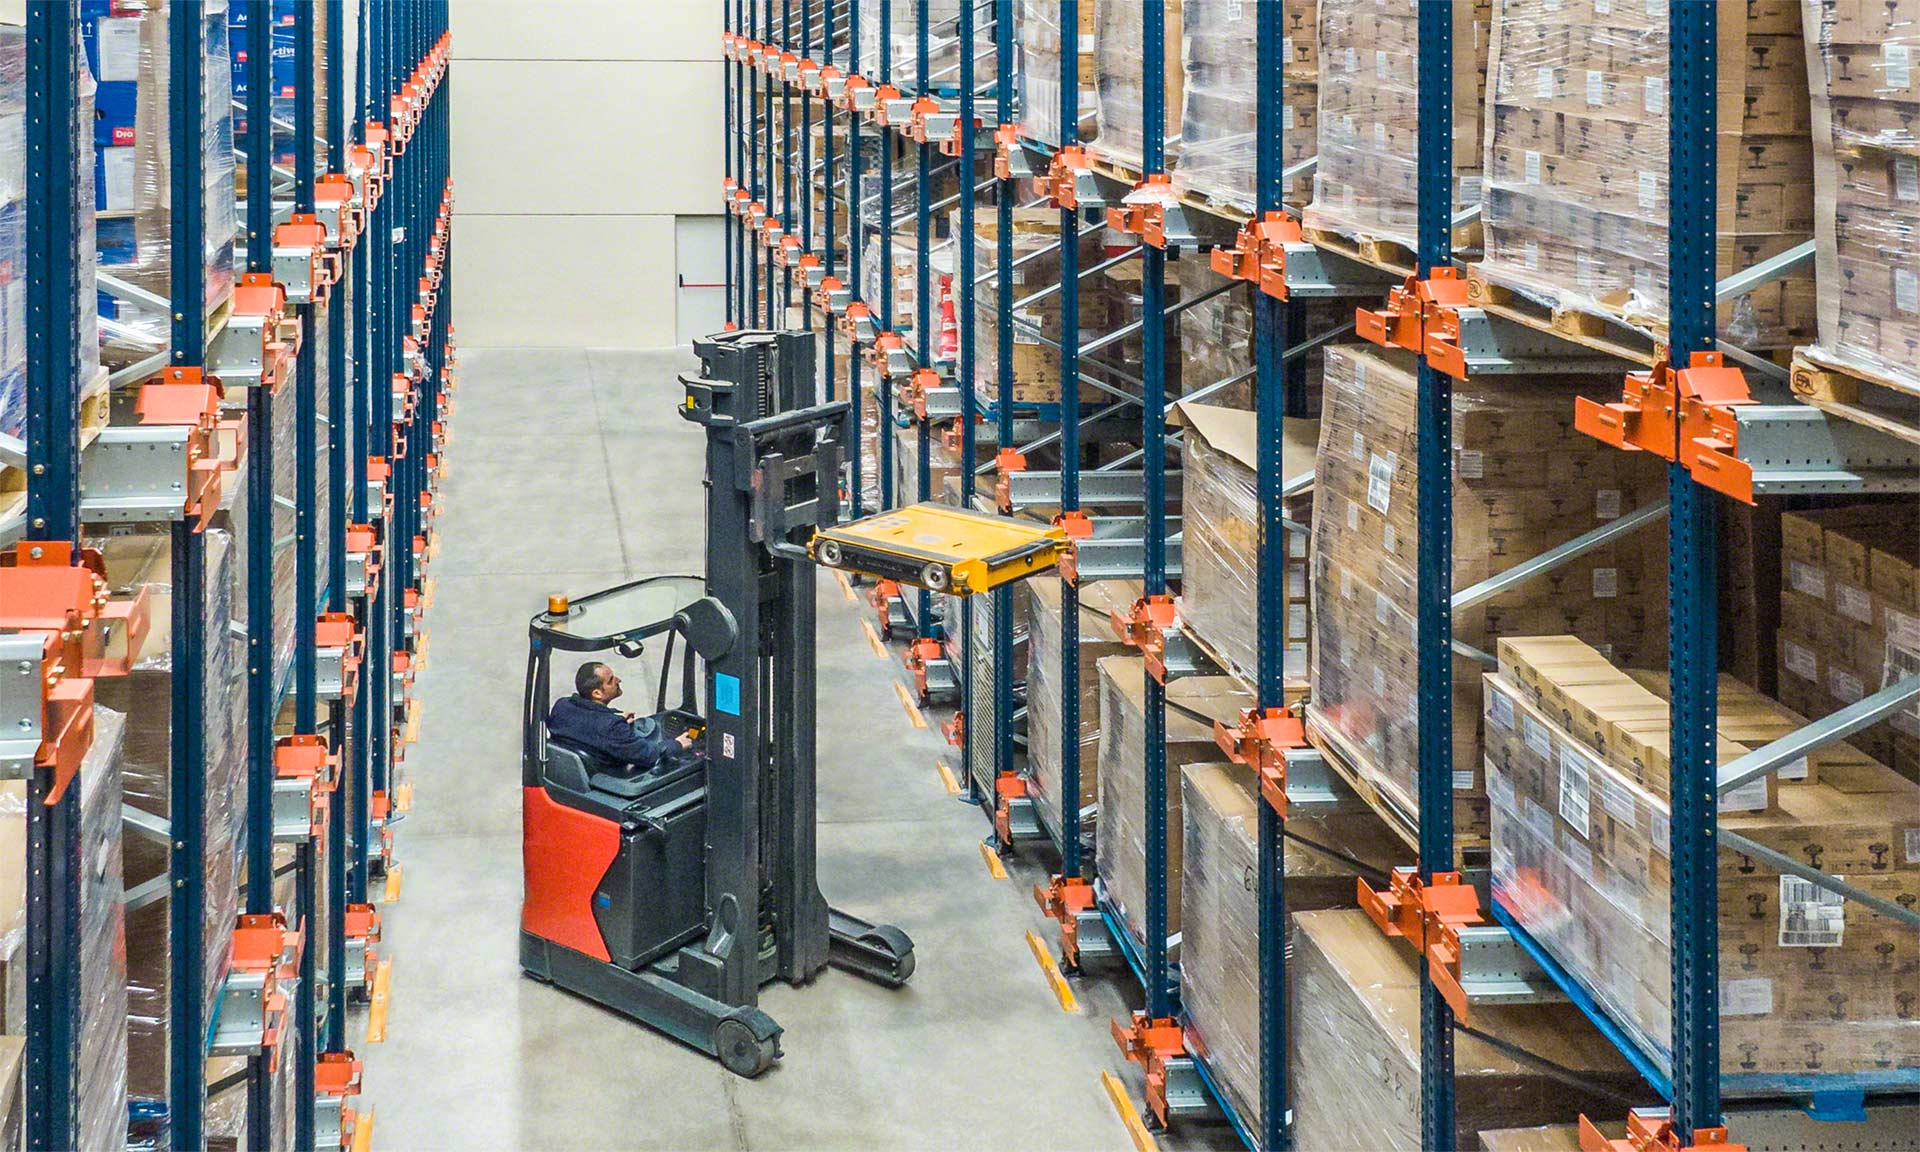 A semi-automated warehouse benefits from the features offered by the Pallet Shuttle system